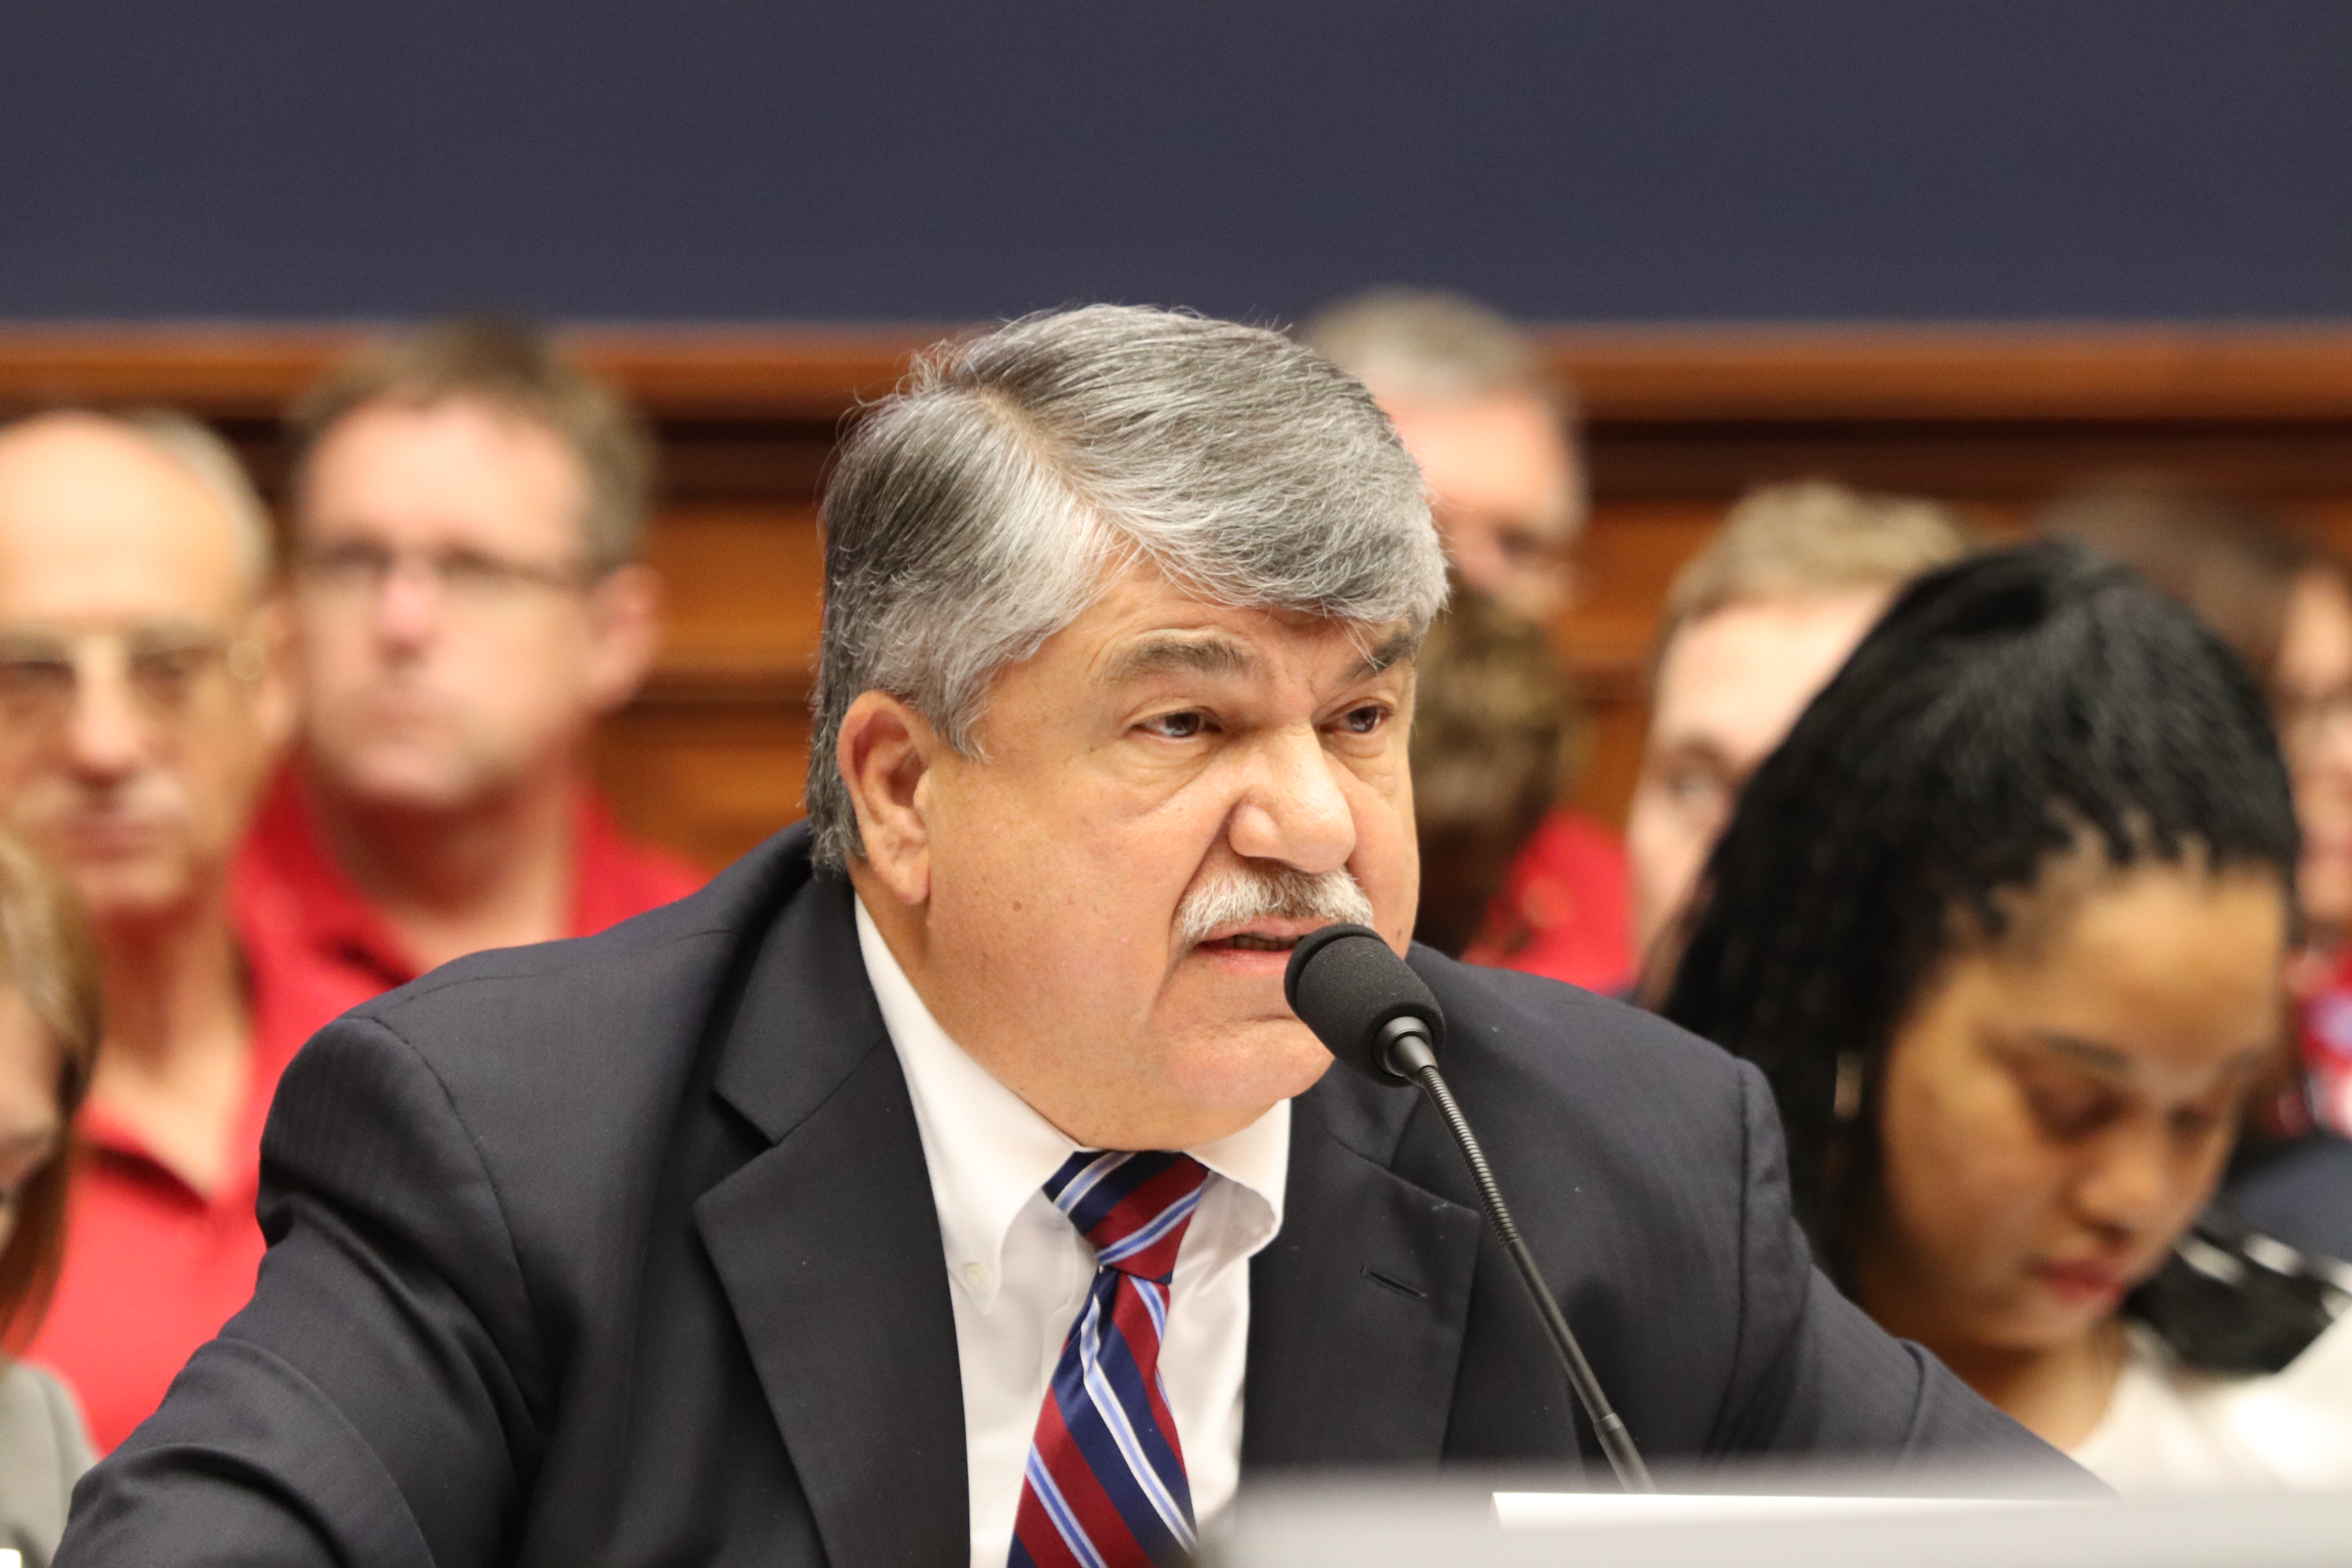 AFL-CIO President Richard Trumka testifies in support of the PRO Act.